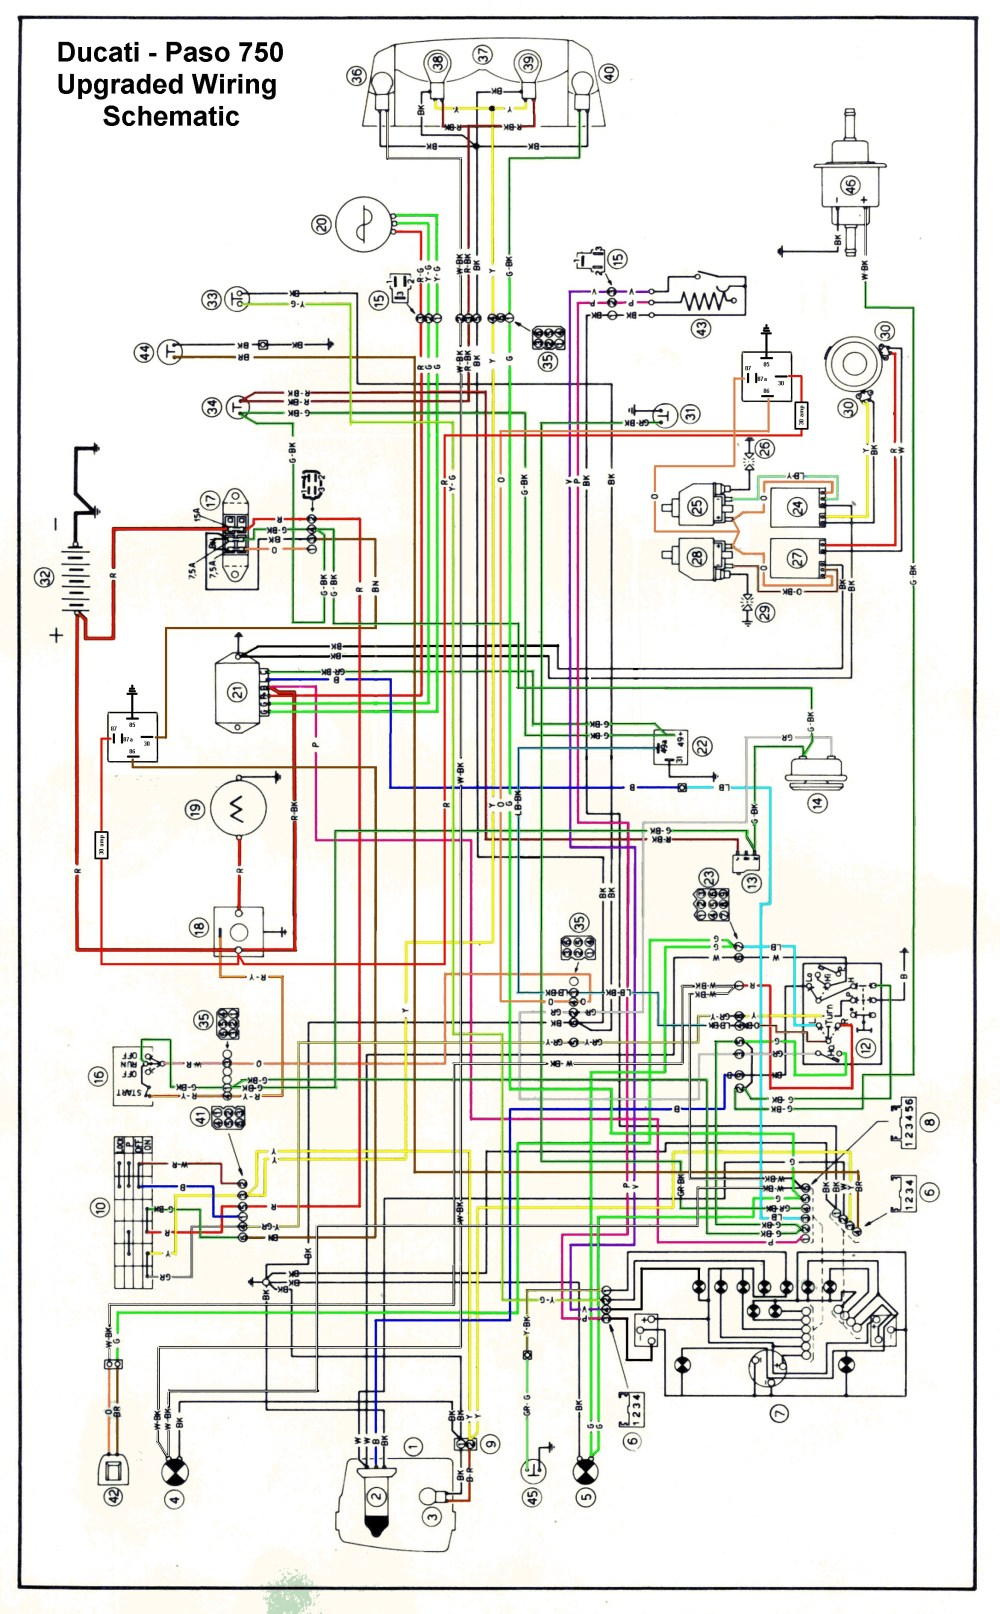 medium resolution of ducati paso wiring diagram wiring library ducati 450 wiring diagram starting to read more about the